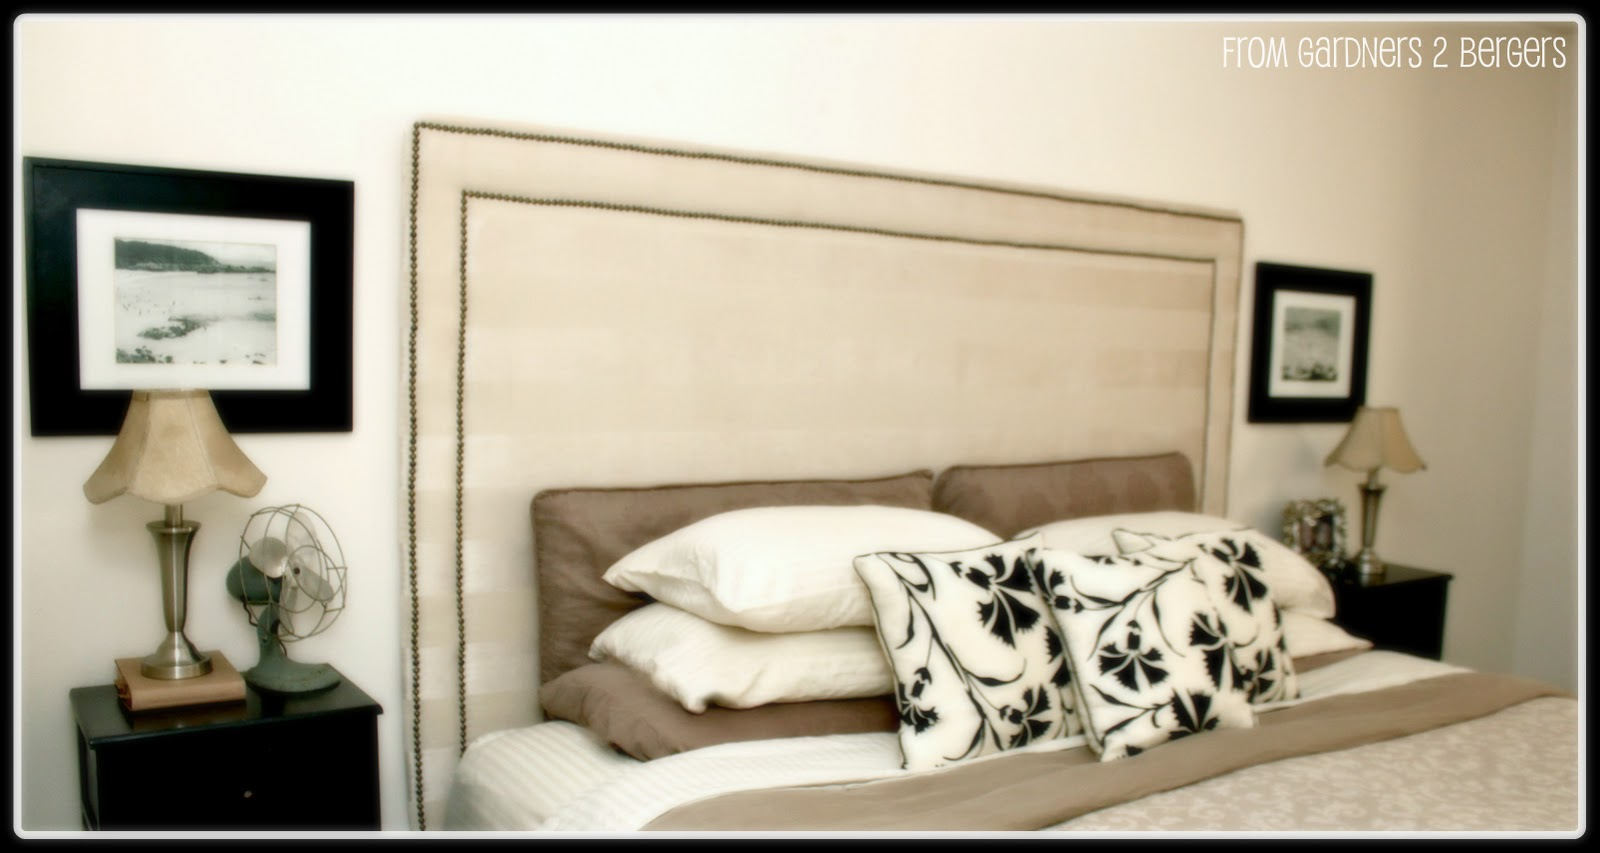 Making An Upholstered Headboard With Nailhead Trim Remodelaholic Upholstered Nail Head Trim Headboard Tutorial